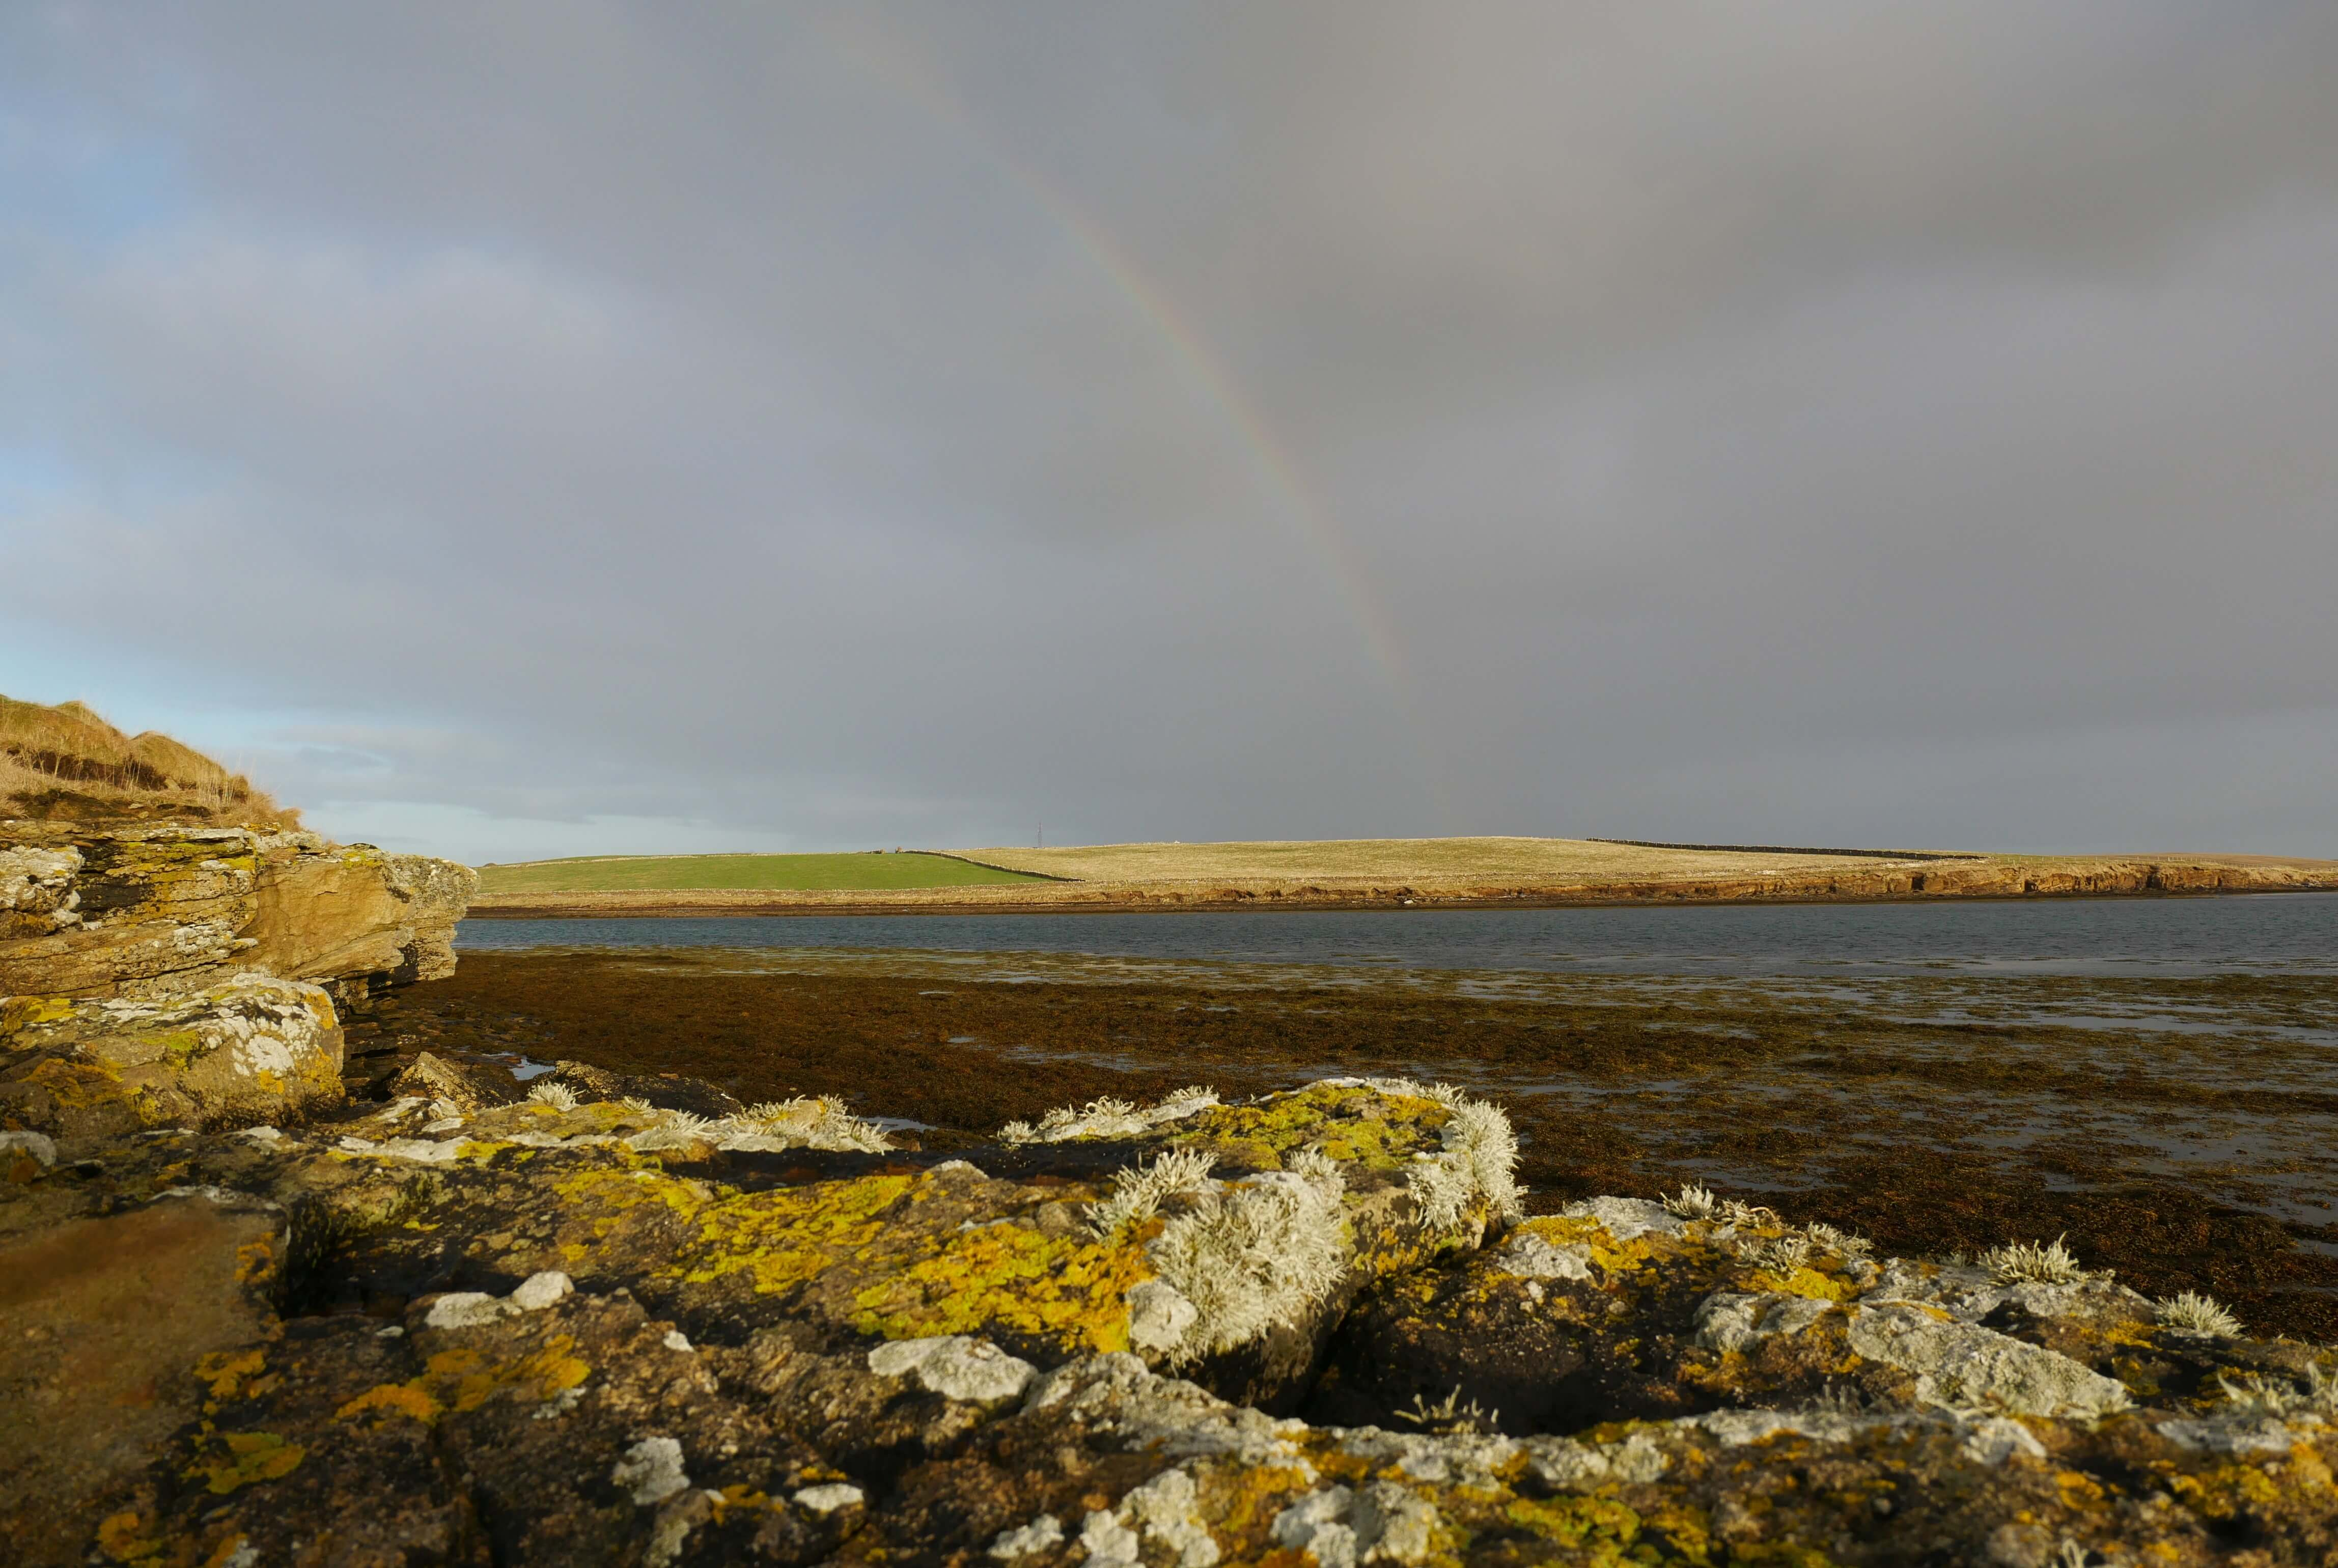 Rainbow on a rugged beach, Stromness, Orkney Islands, Scotland, UK